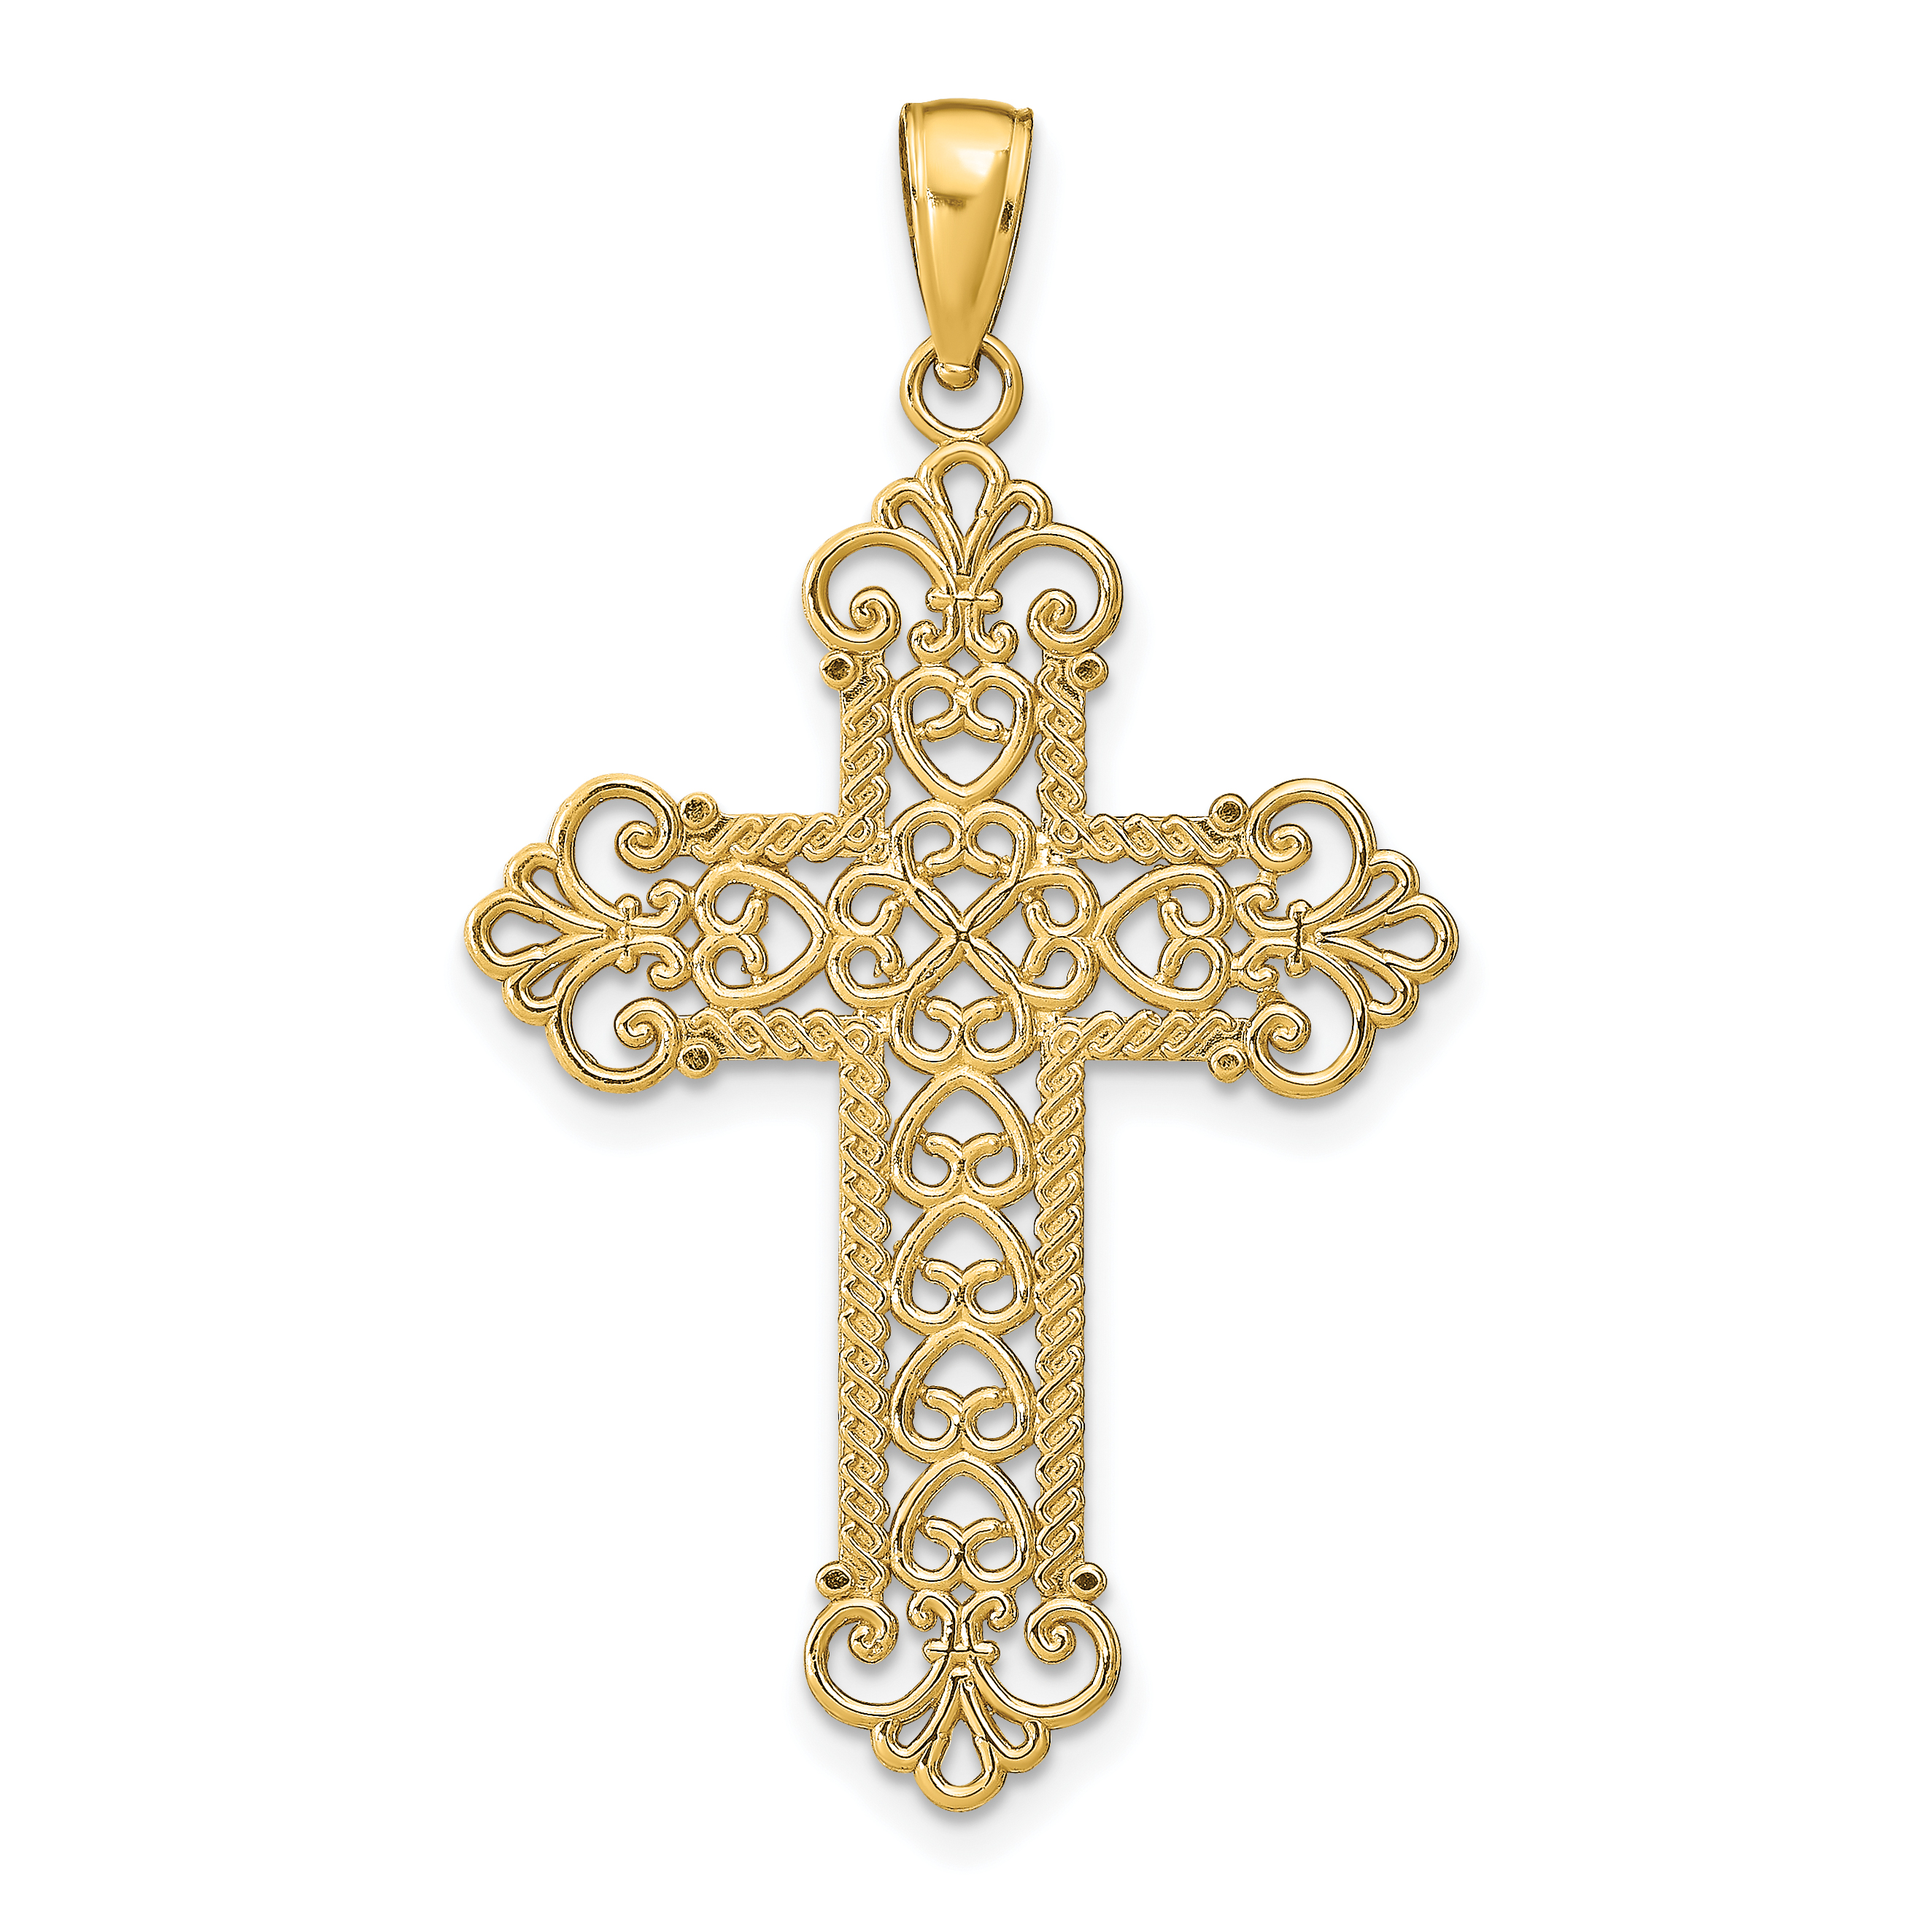 14k gold polished large rope frame filigree cross pendant for What is gold polished jewelry